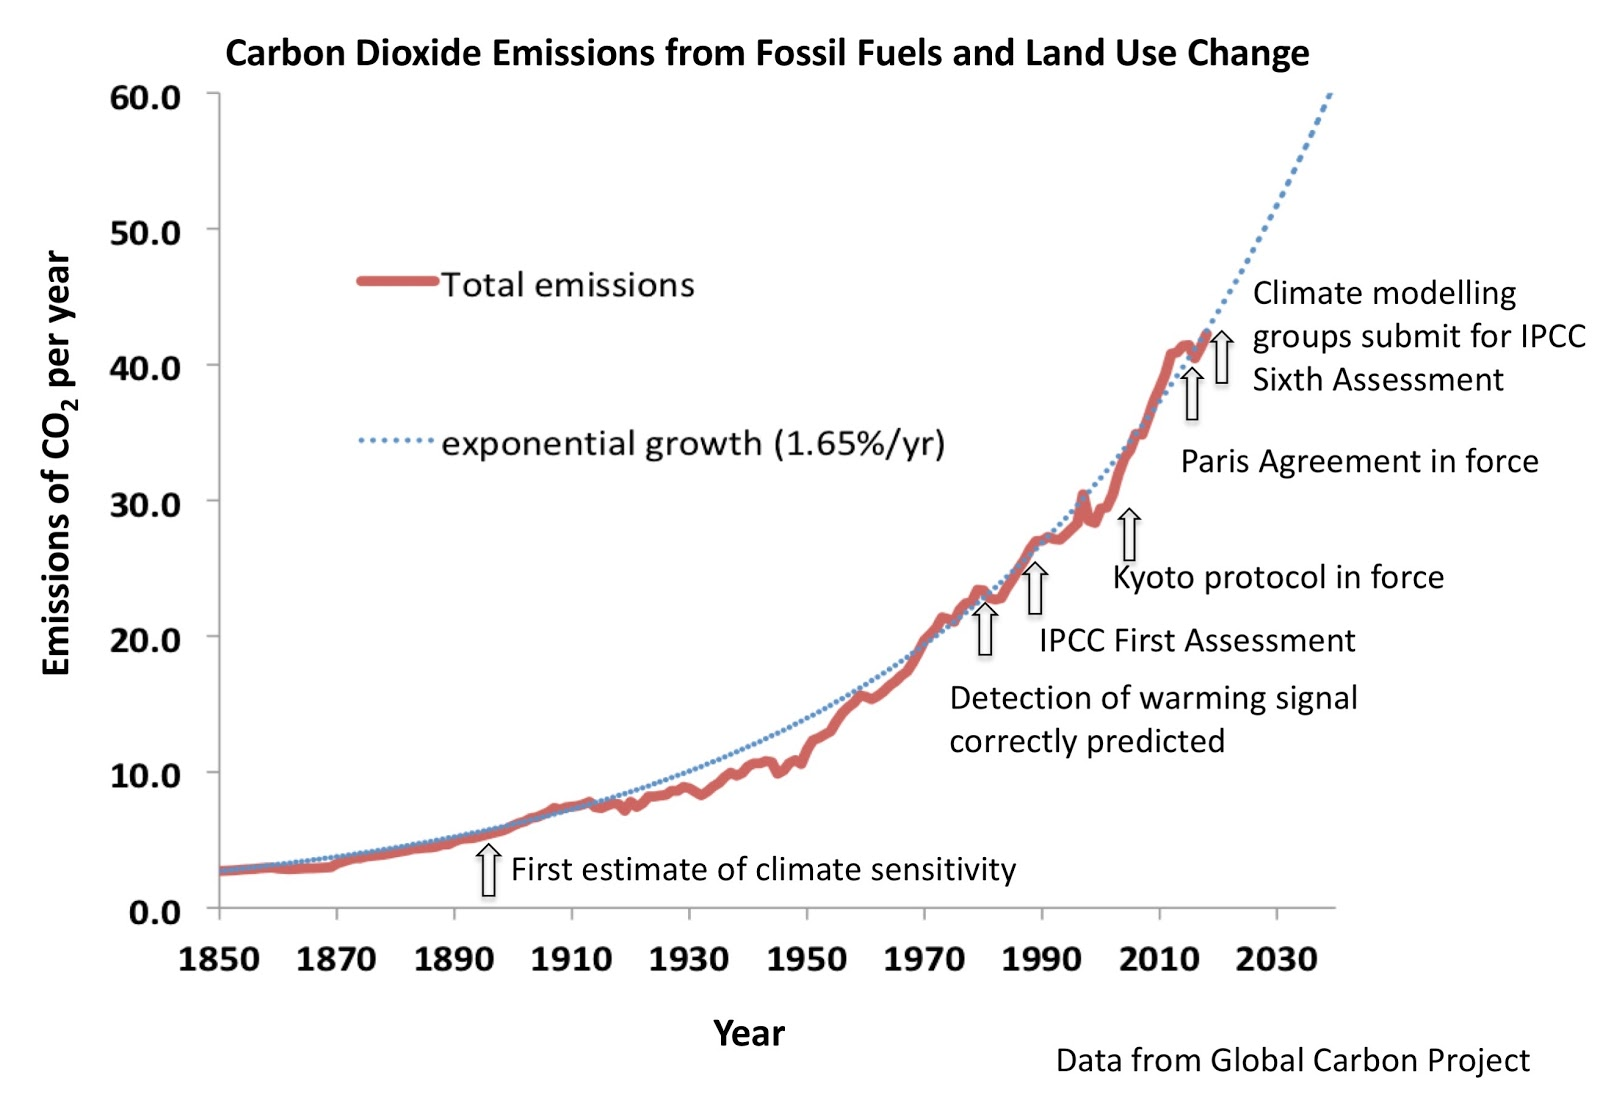 CO2 emissions from fossil fuels and Land use change, with events added to the plot such as the Paris Agreement